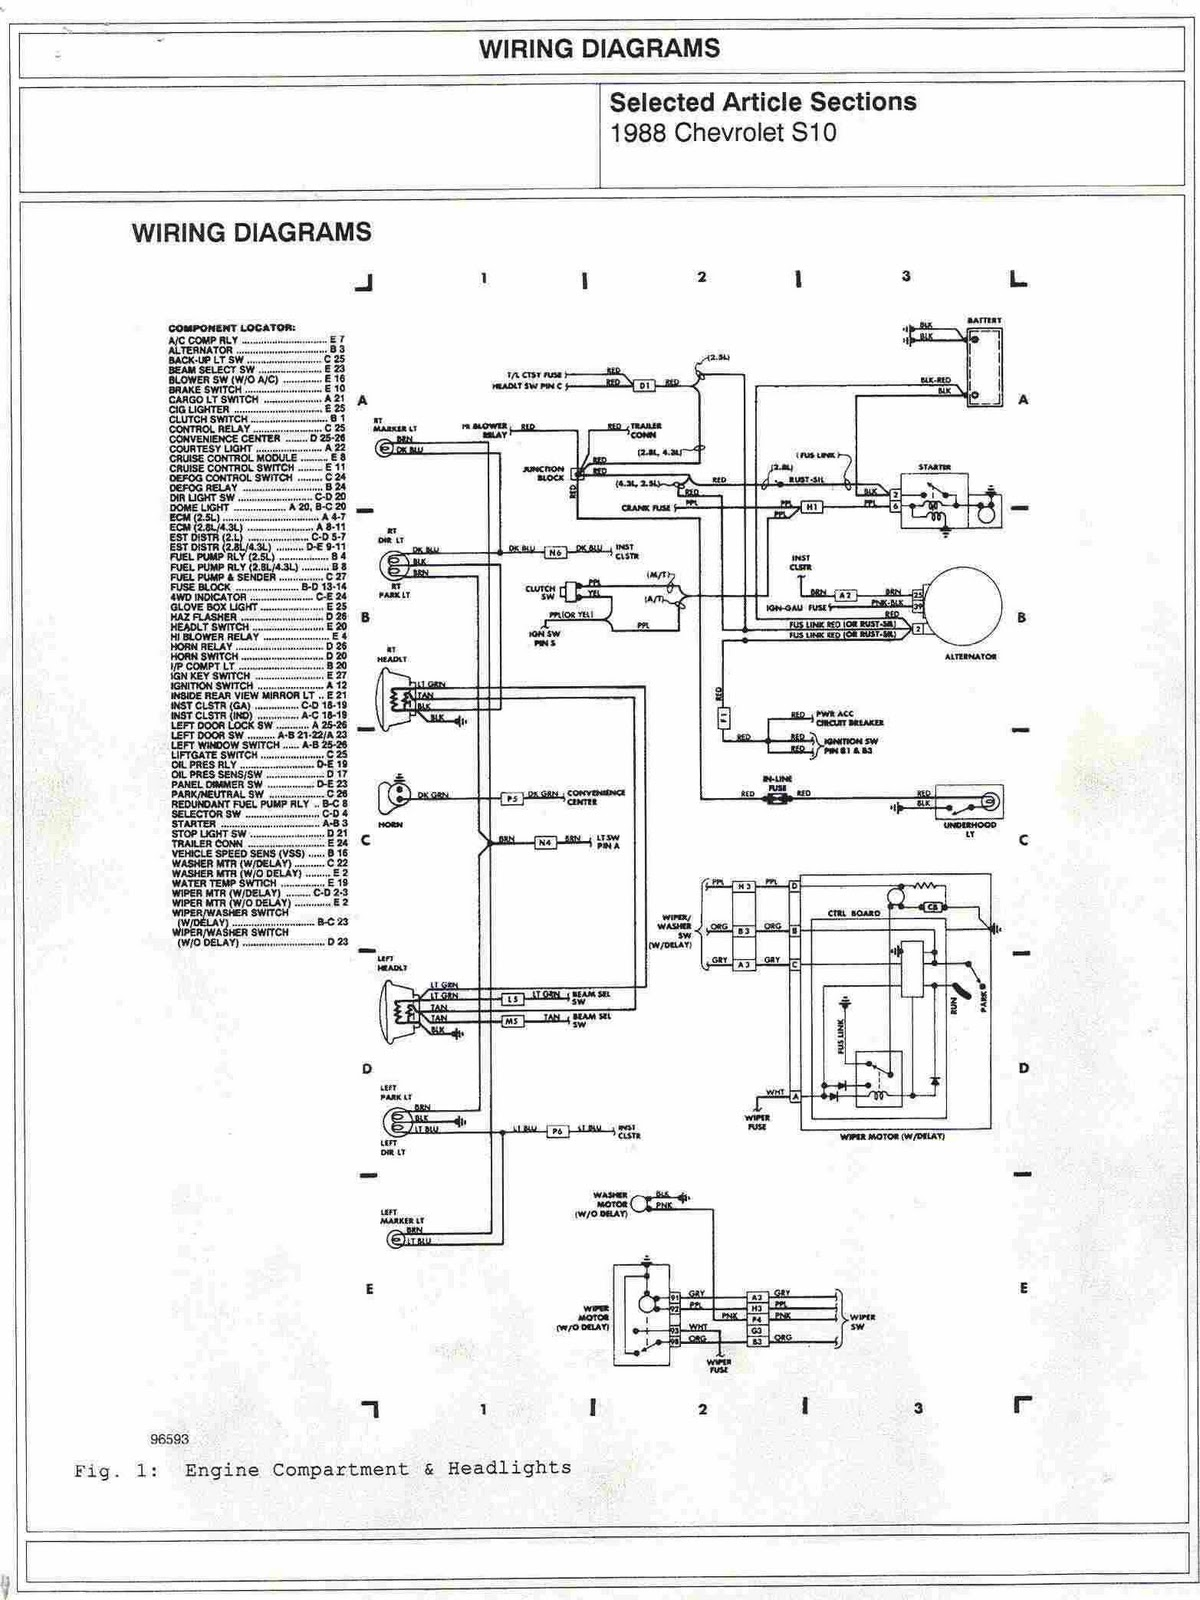 1994 f250 fuse box diagram wiring schematic 91 s10 fuse box diagram wiring schematic